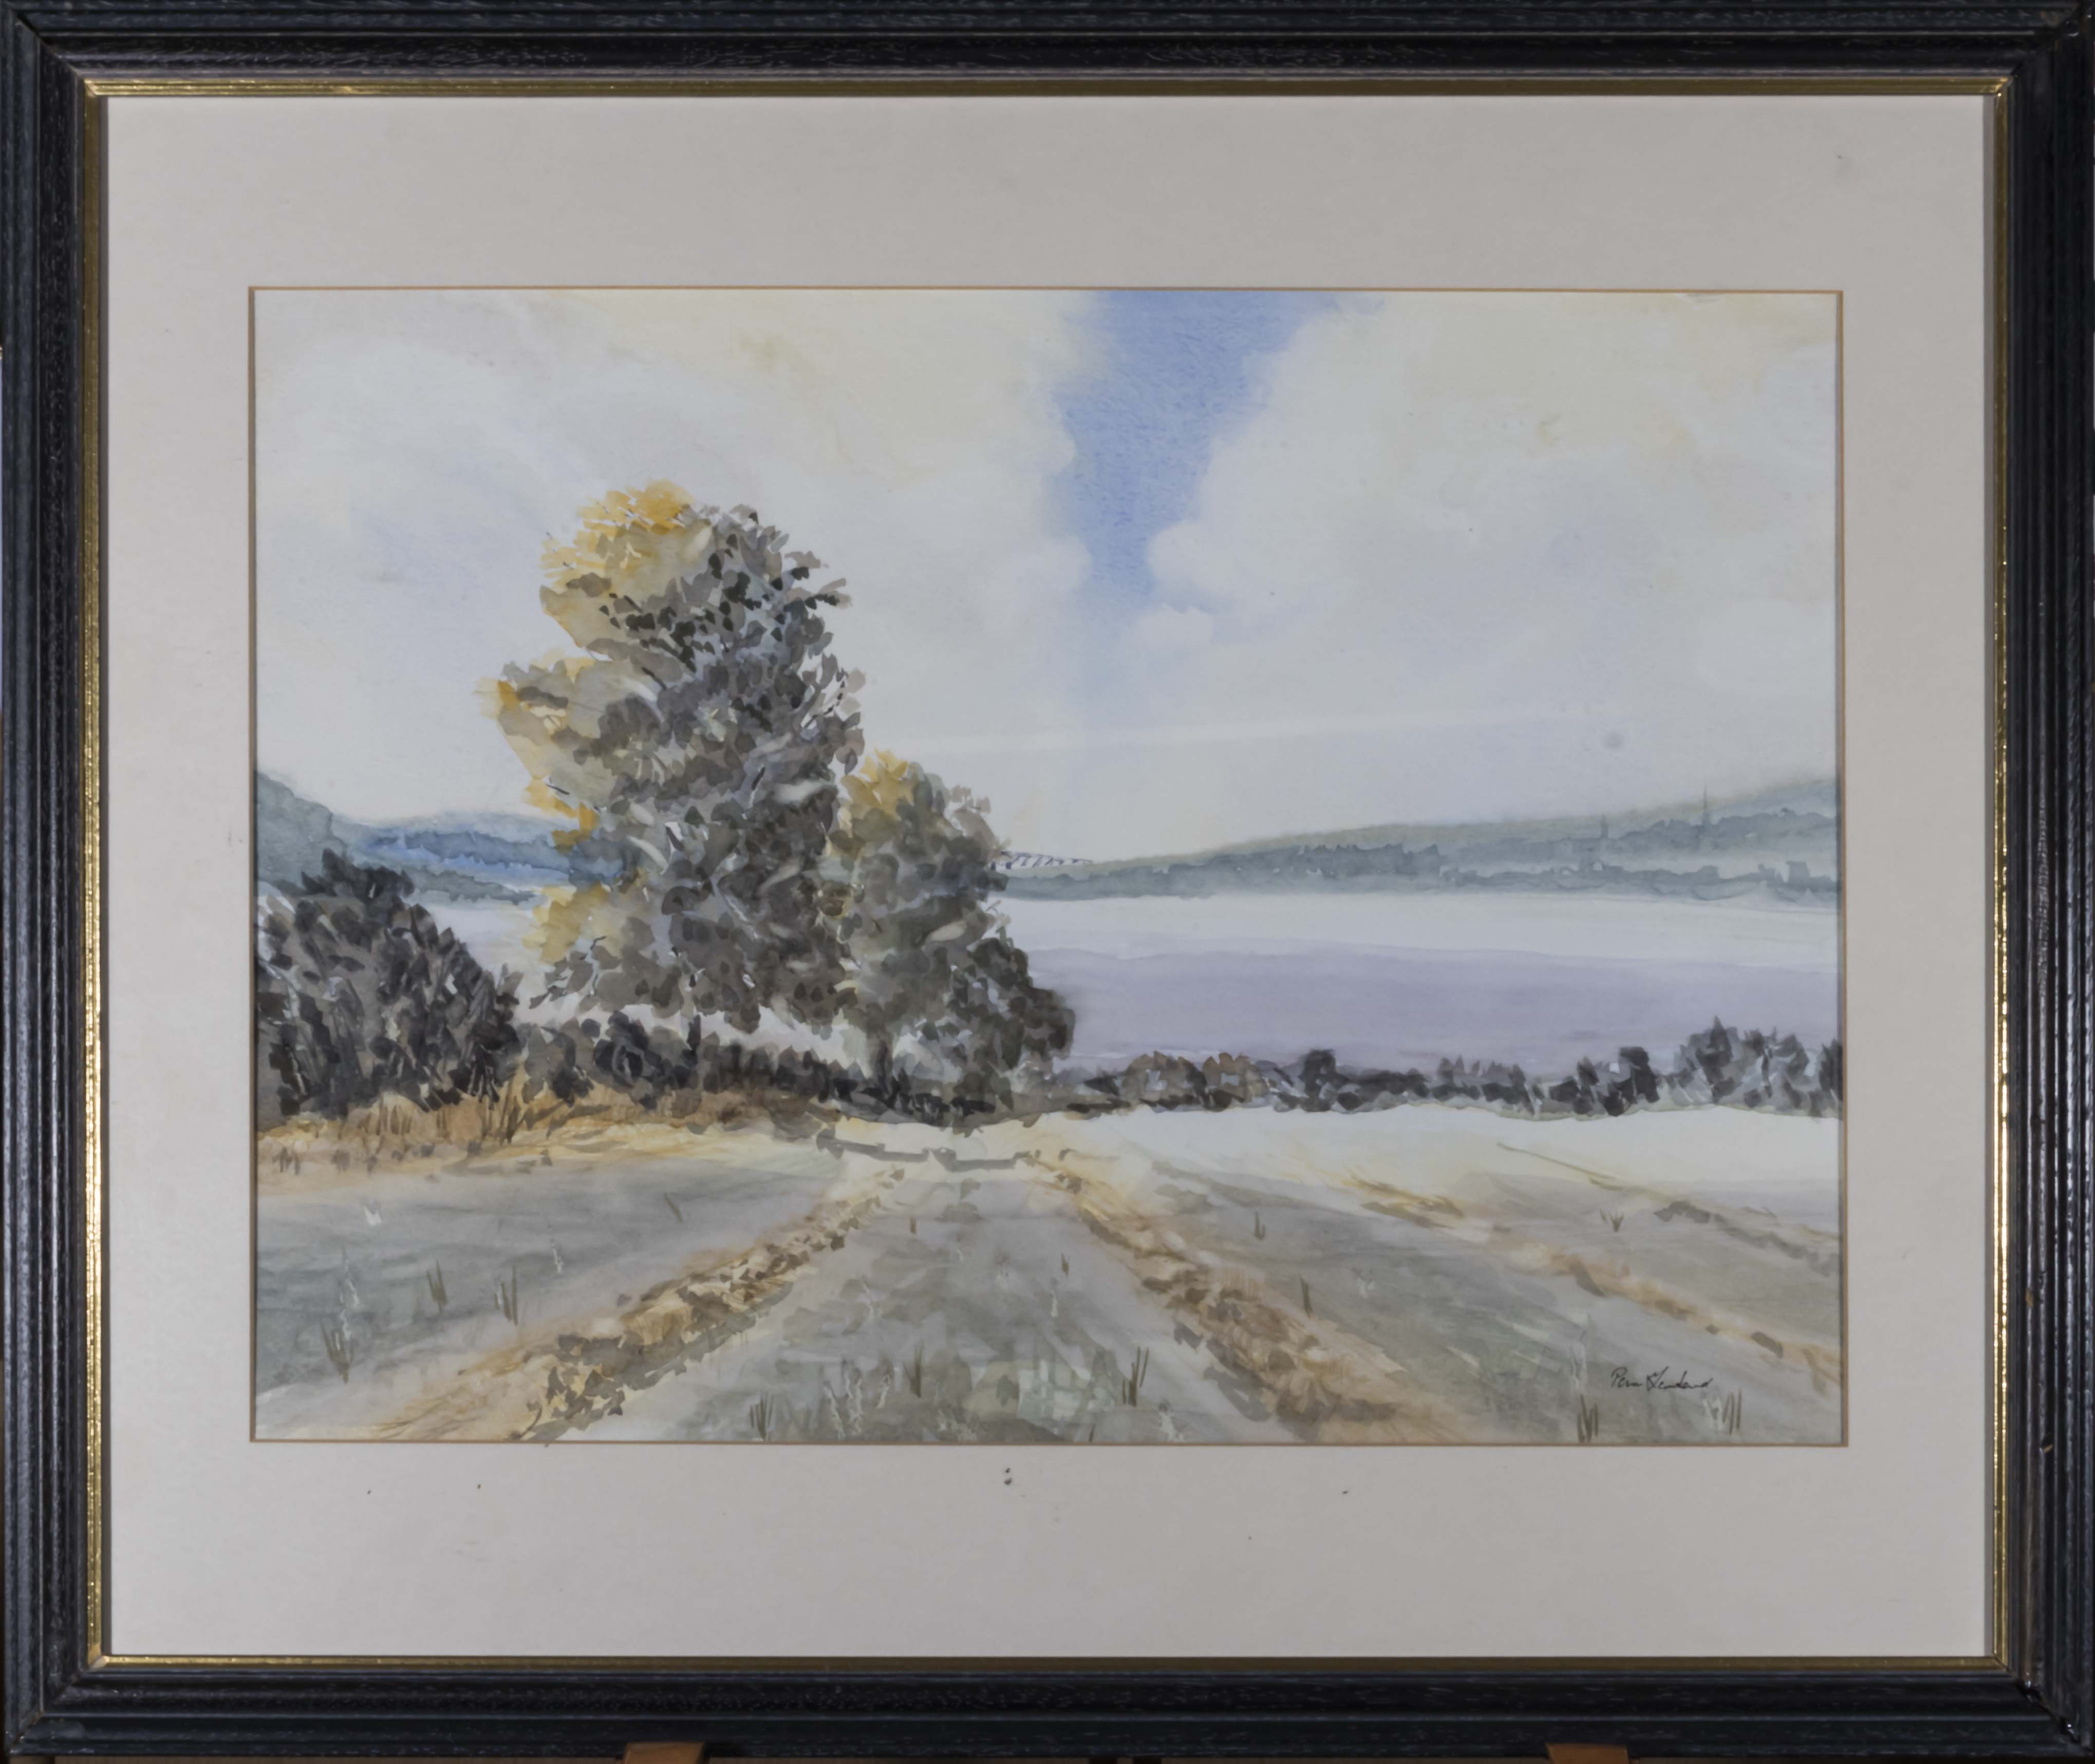 Lot 42 - A framed watercolour depicting a rural scene, signed Pam Townsend